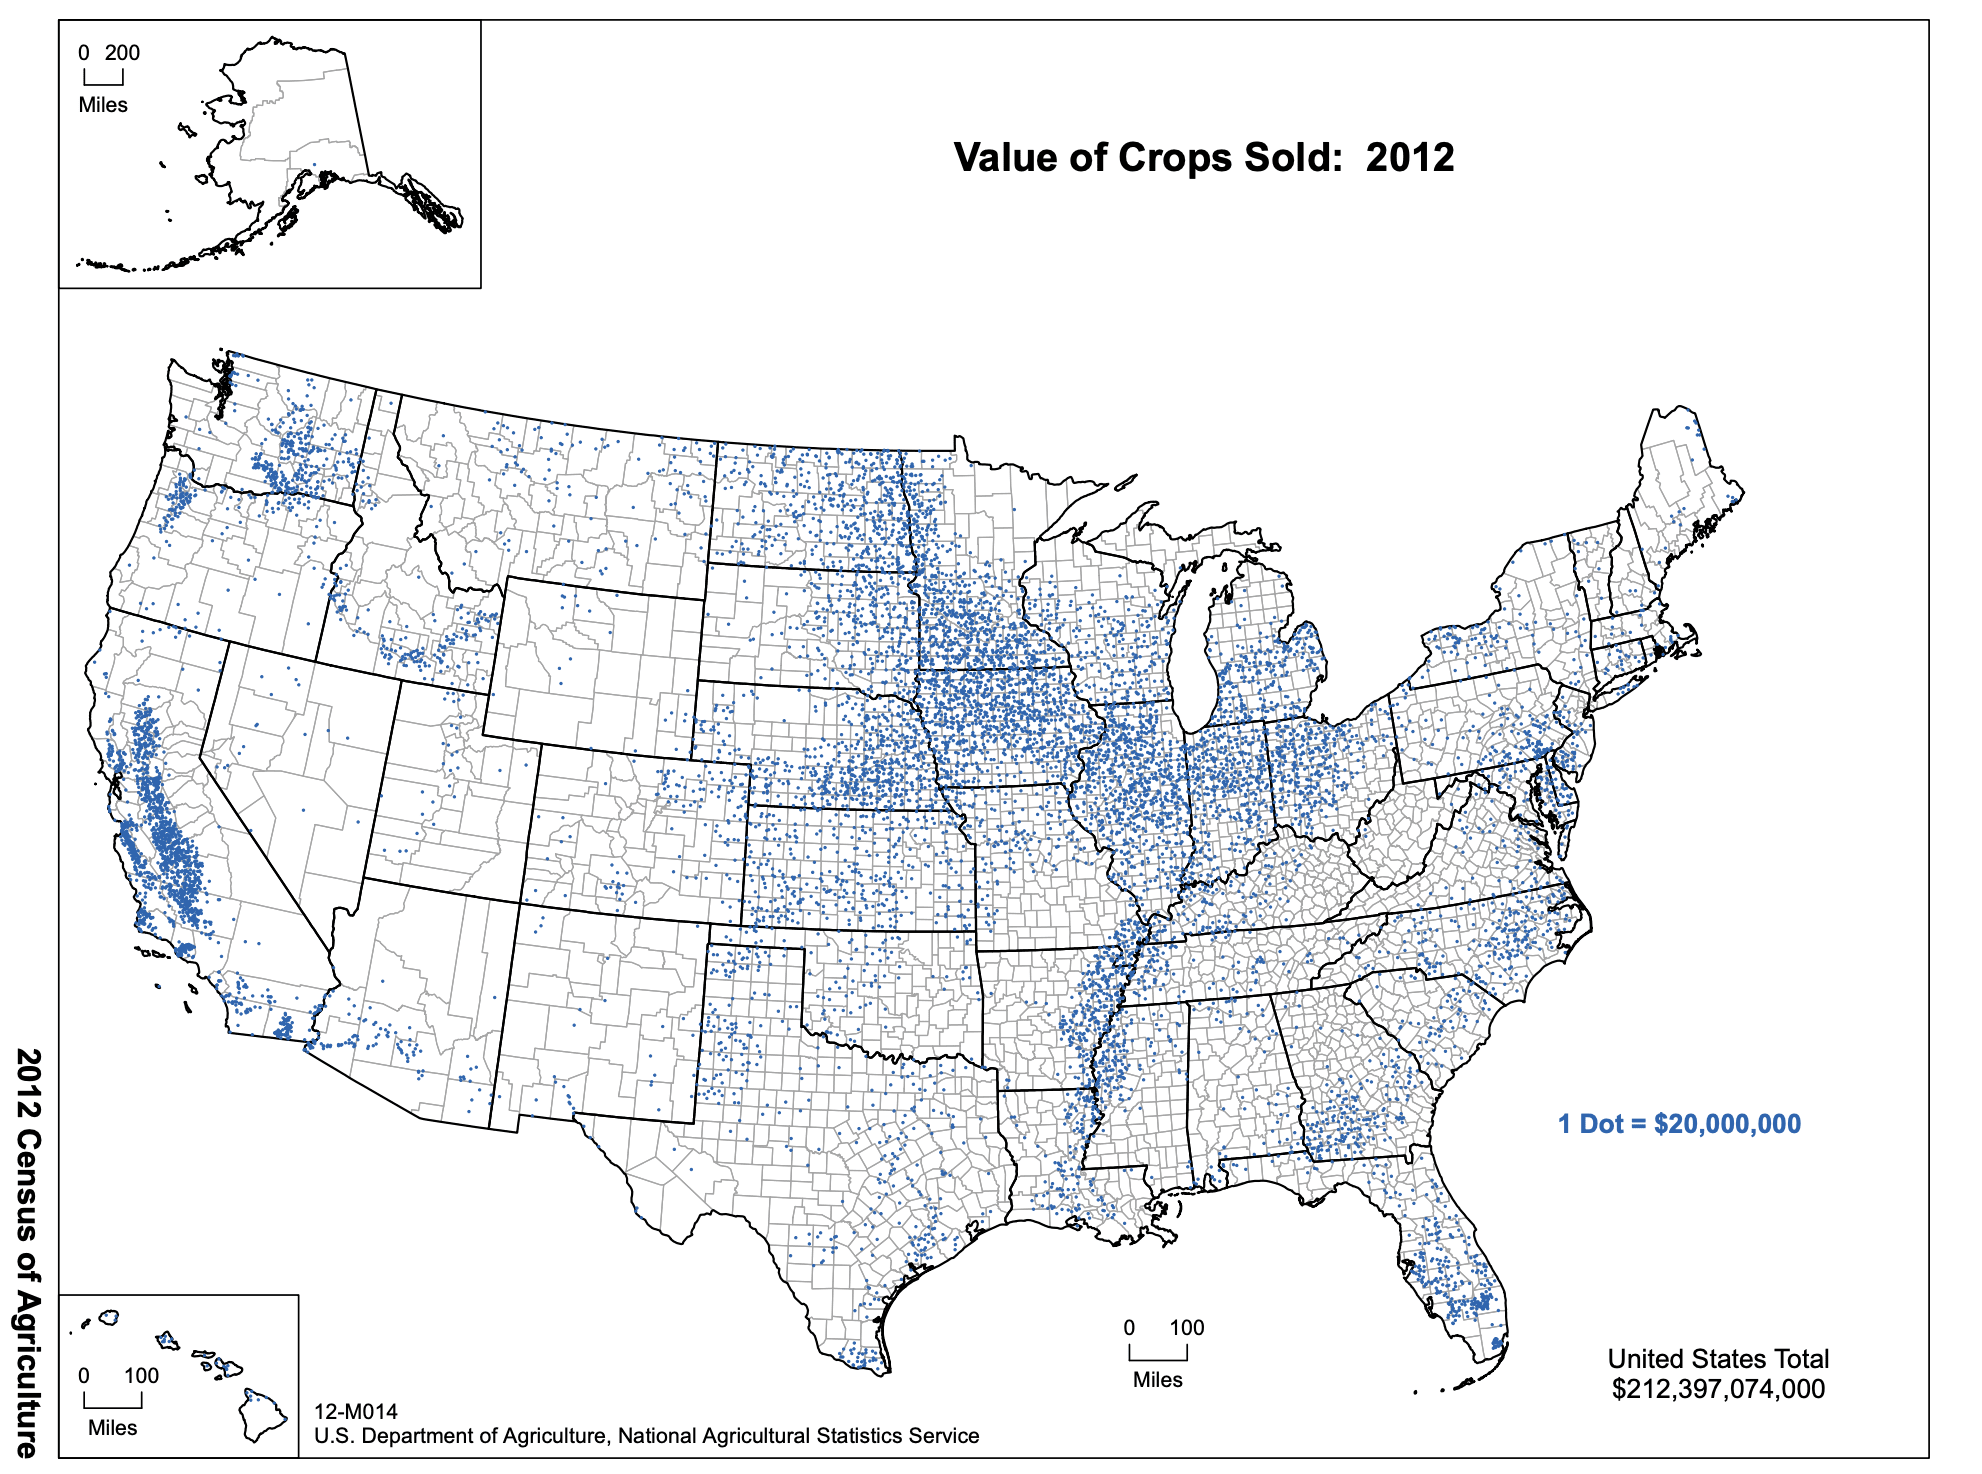 2012 Census of Agriculture, United States Total Value of Crops Sold: $212,397,074,000